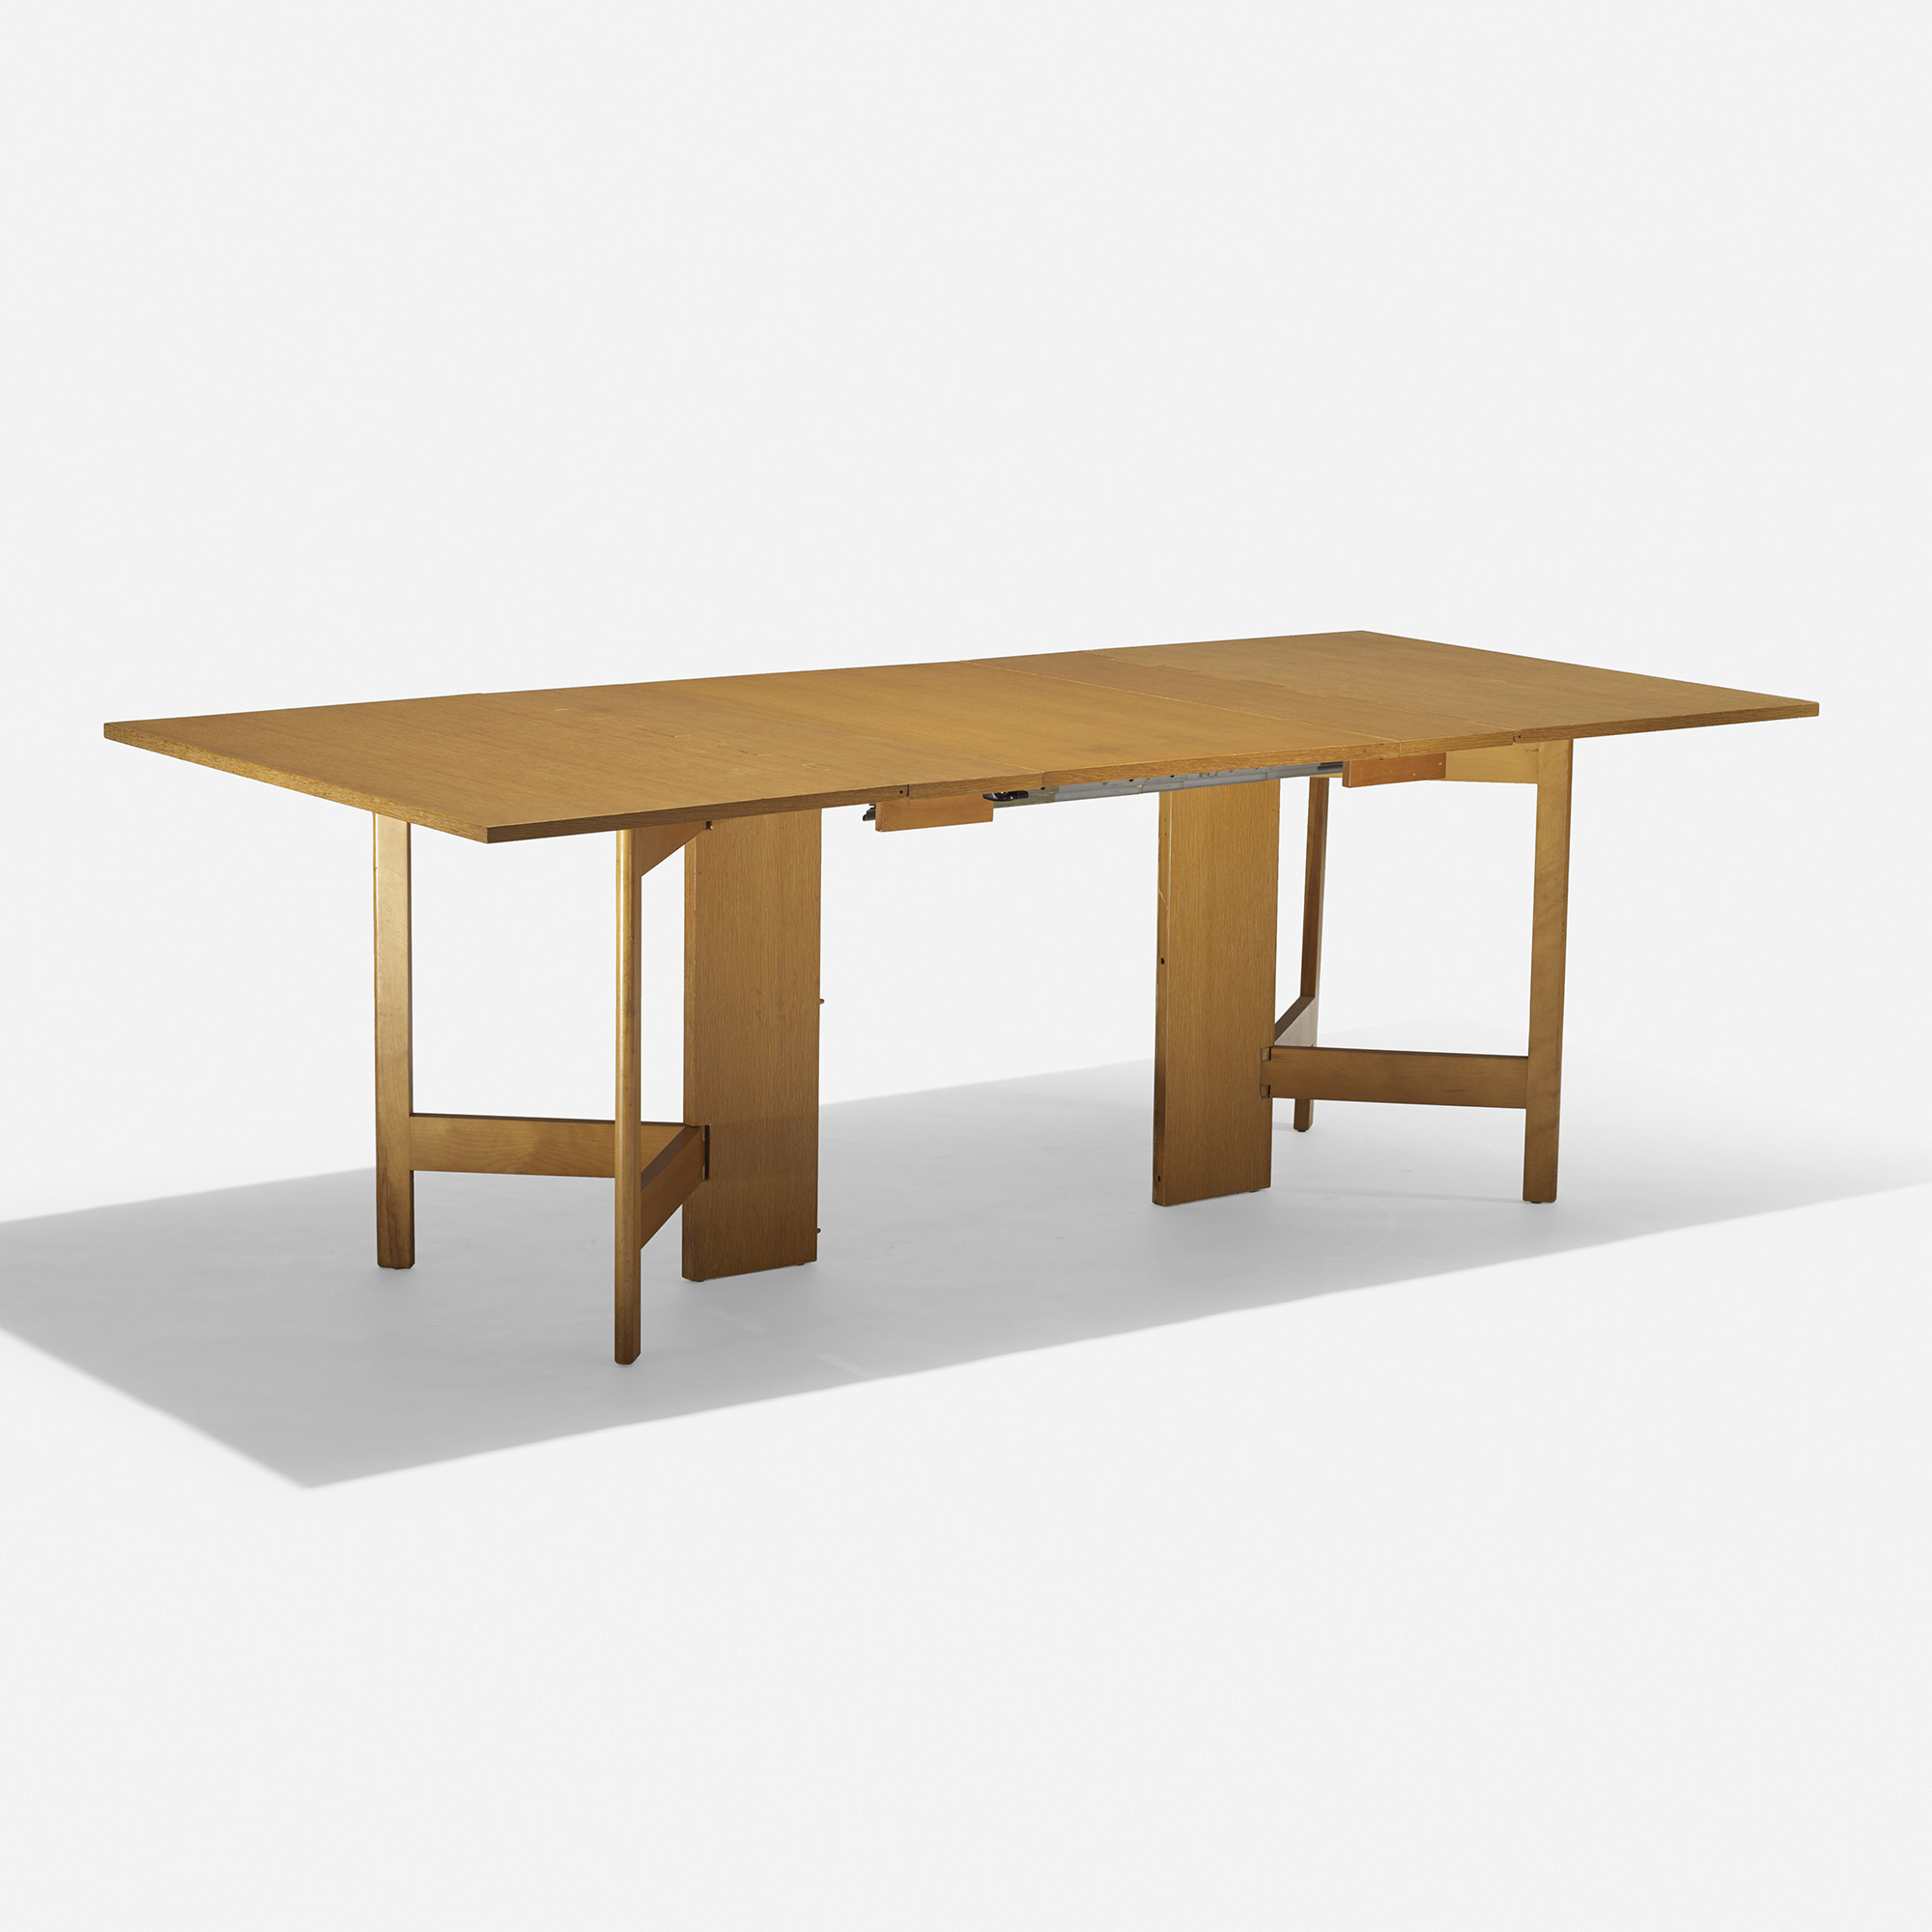 444 george nelson associates gate leg dining table for Dining table models